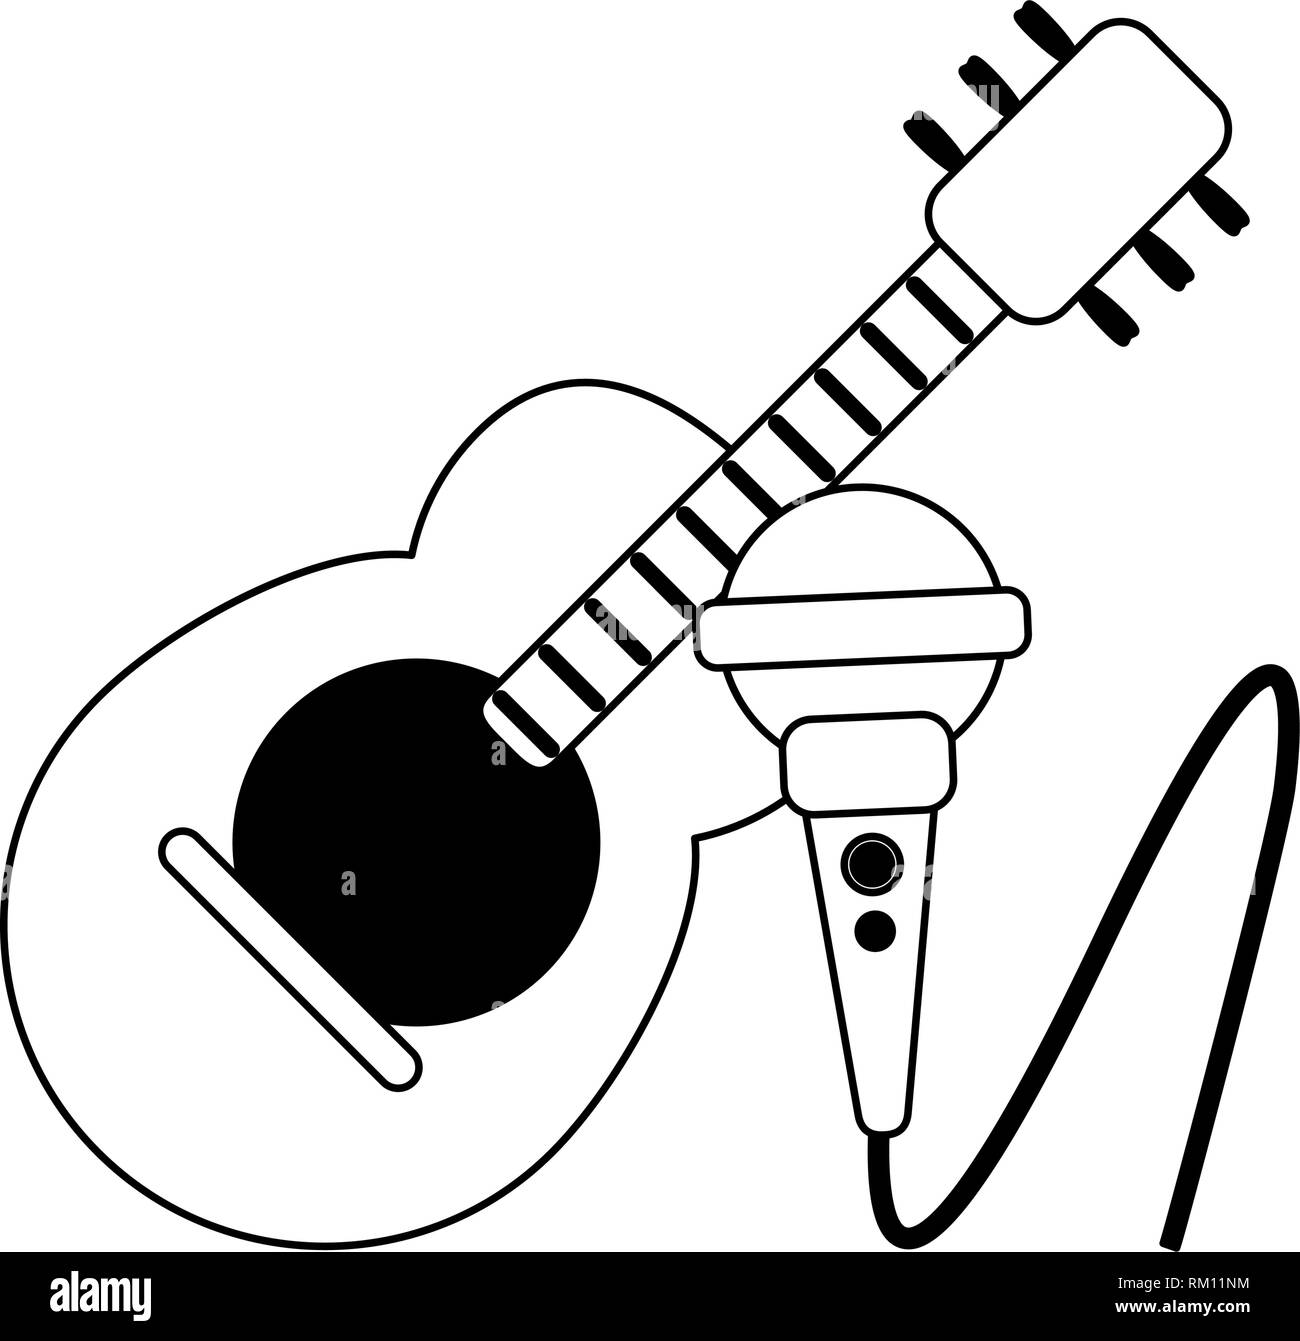 Acoustic Guitar And Microphone Cartoon In Black And White Stock Vector Image Art Alamy